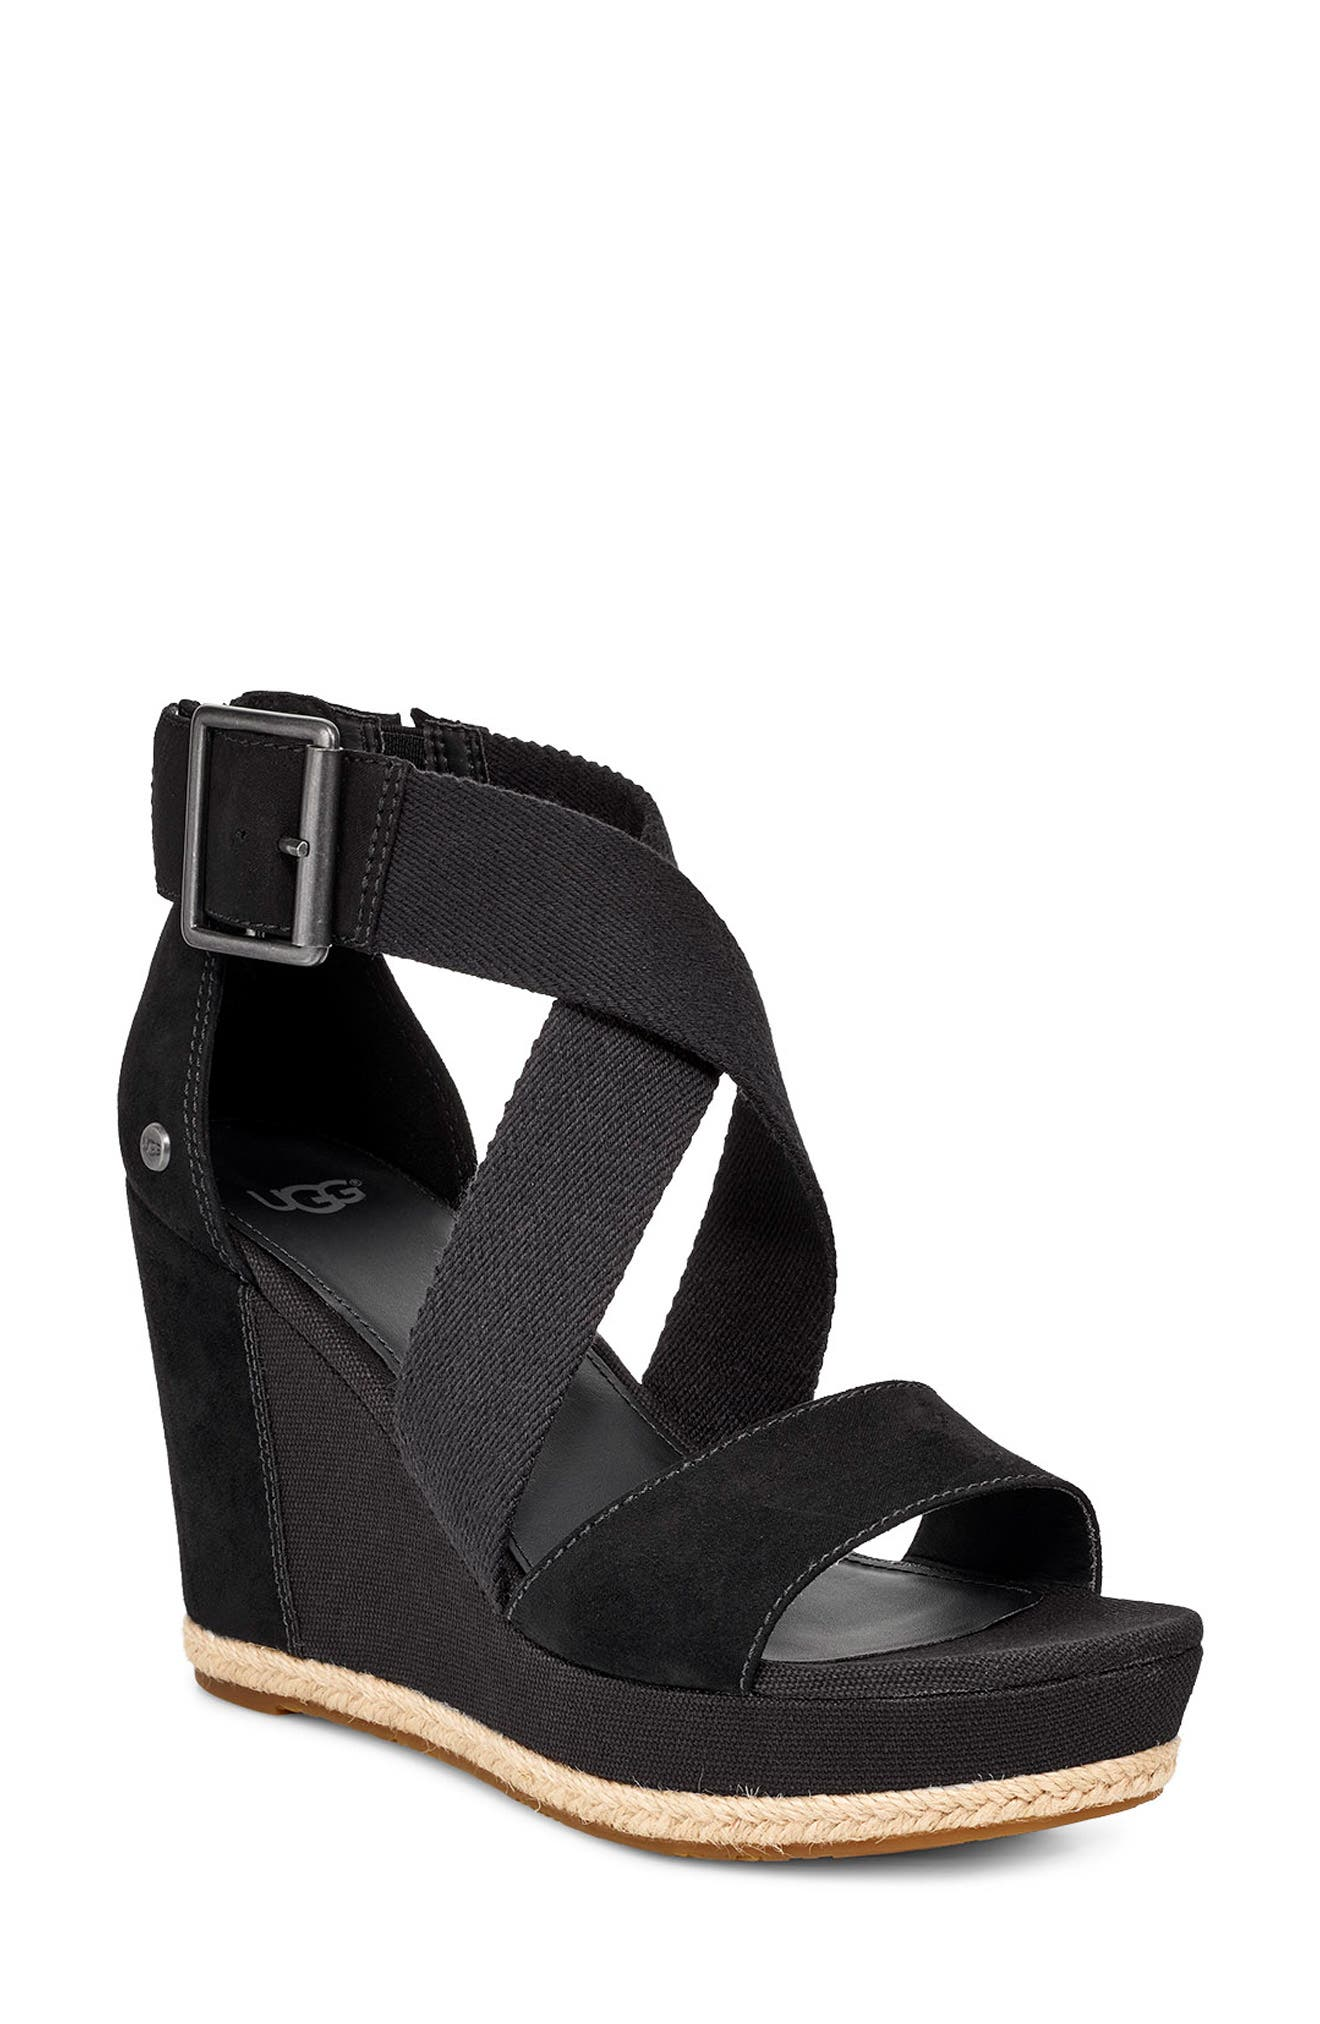 UGG<SUP>®</SUP>, Calla Wedge Sandal, Main thumbnail 1, color, BLACK FABRIC